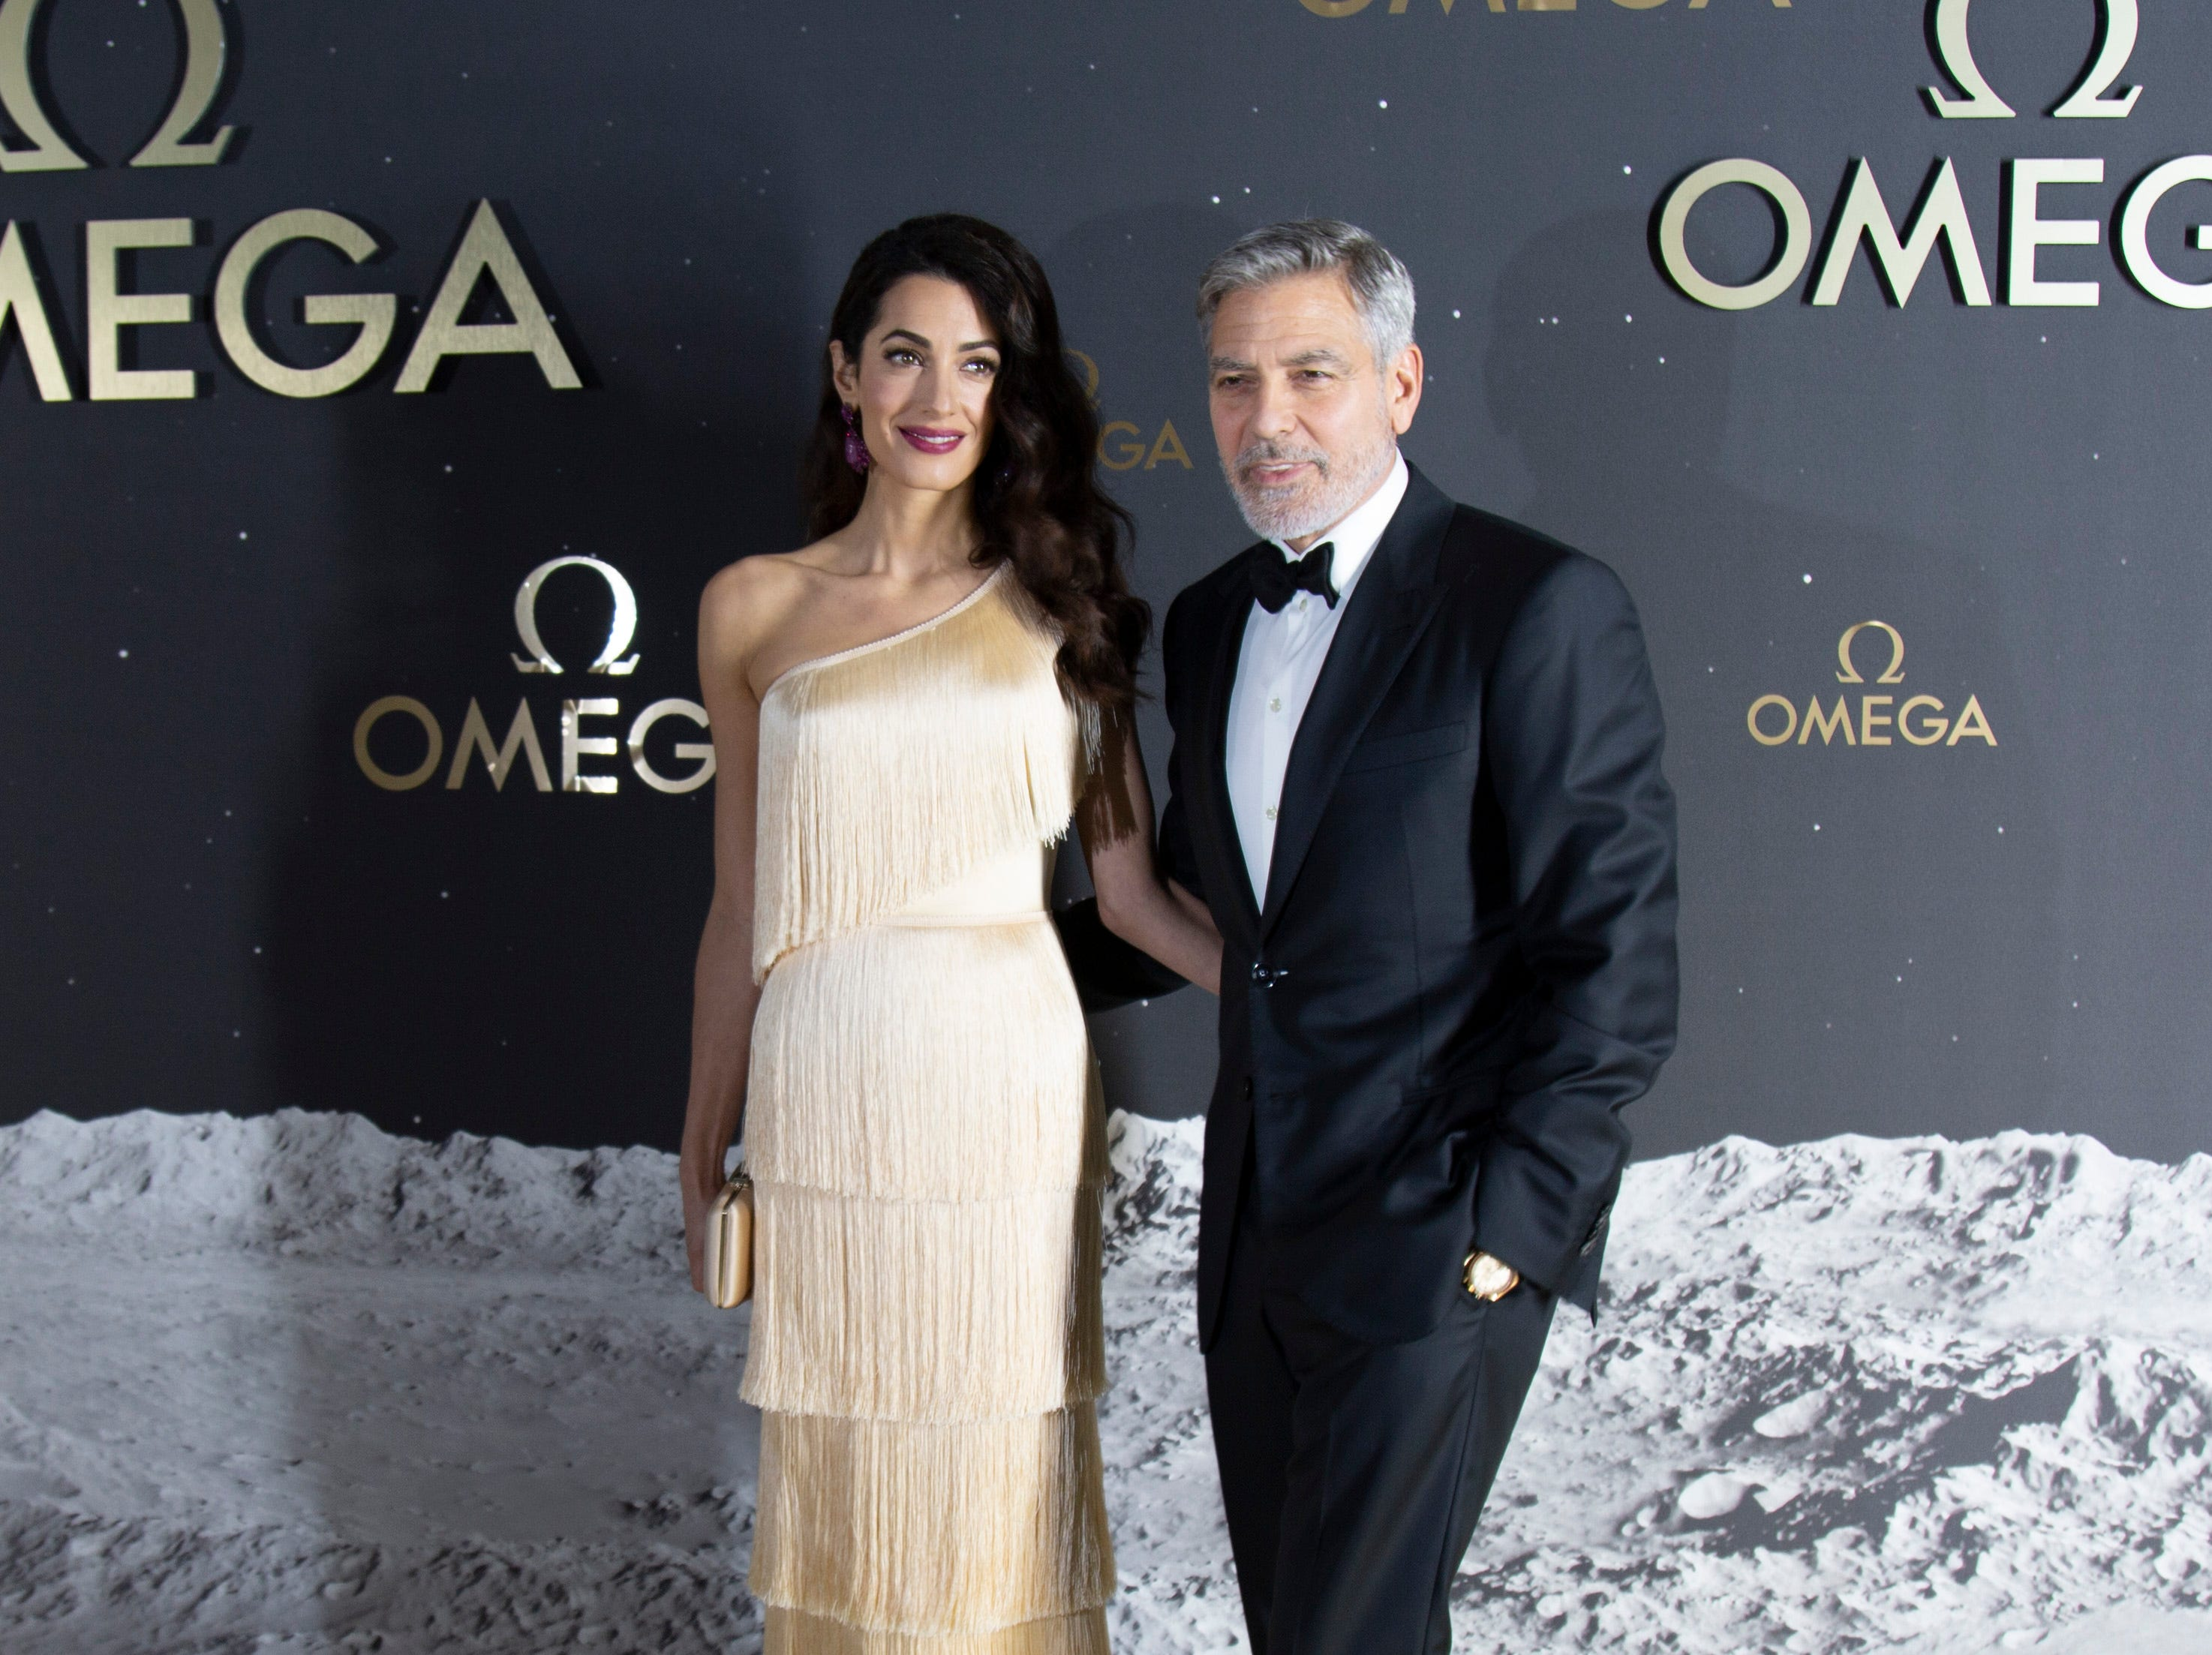 George and Amal Clooney at the red carpet outside the Apollo/Saturn V Center Thursday evening. The Swiss watch brand Omega, which accompanied Apollo 11 astronaut Buzz Aldrin when he walked on the moon's surface nearly 50 years ago, hosted an event honoring the 50th anniversary of the moon landing at the Apollo/Saturn V Center at the Kennedy Space Center. Those who attended the black-tie dinner included actor George Clooney,  as well as former astronauts Thomas Stafford and Charles Moss Duke.